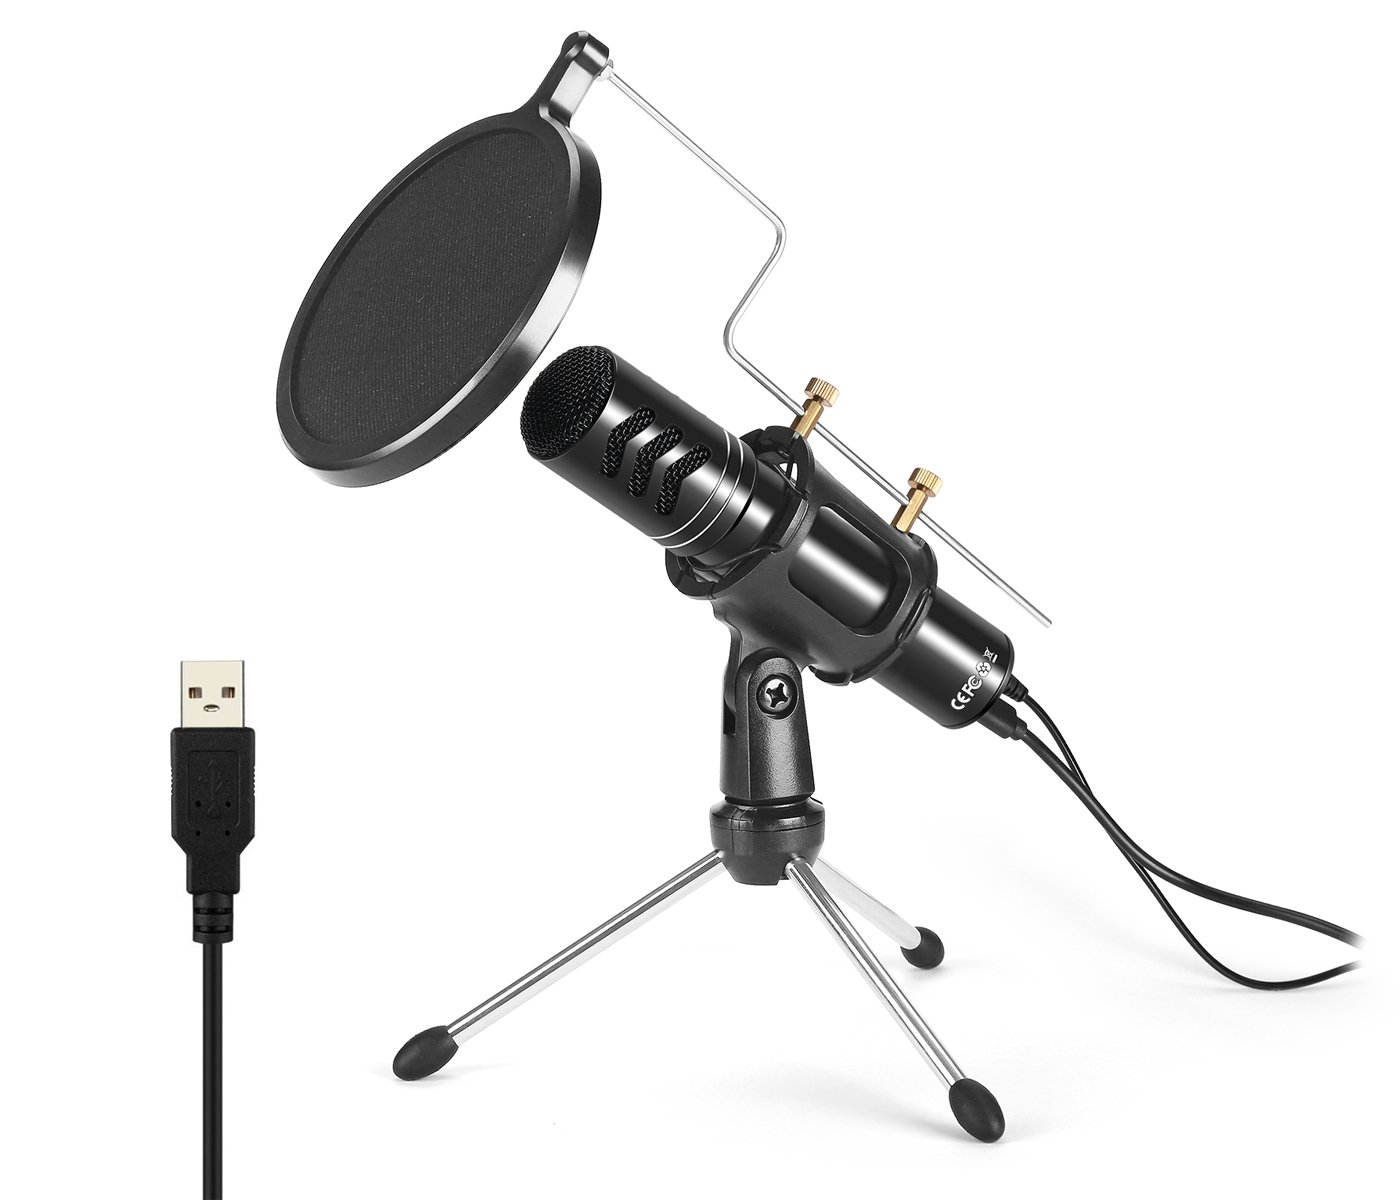 Aokeo USB Computer Professional Condenser Studio Microphone Plug & Play with Tripod Stand & Dual Layered Pop Filter for Chat/Skype/YouTube/Recording/Gaming/Podcasting/Streaming/Recording for PC, iMAC